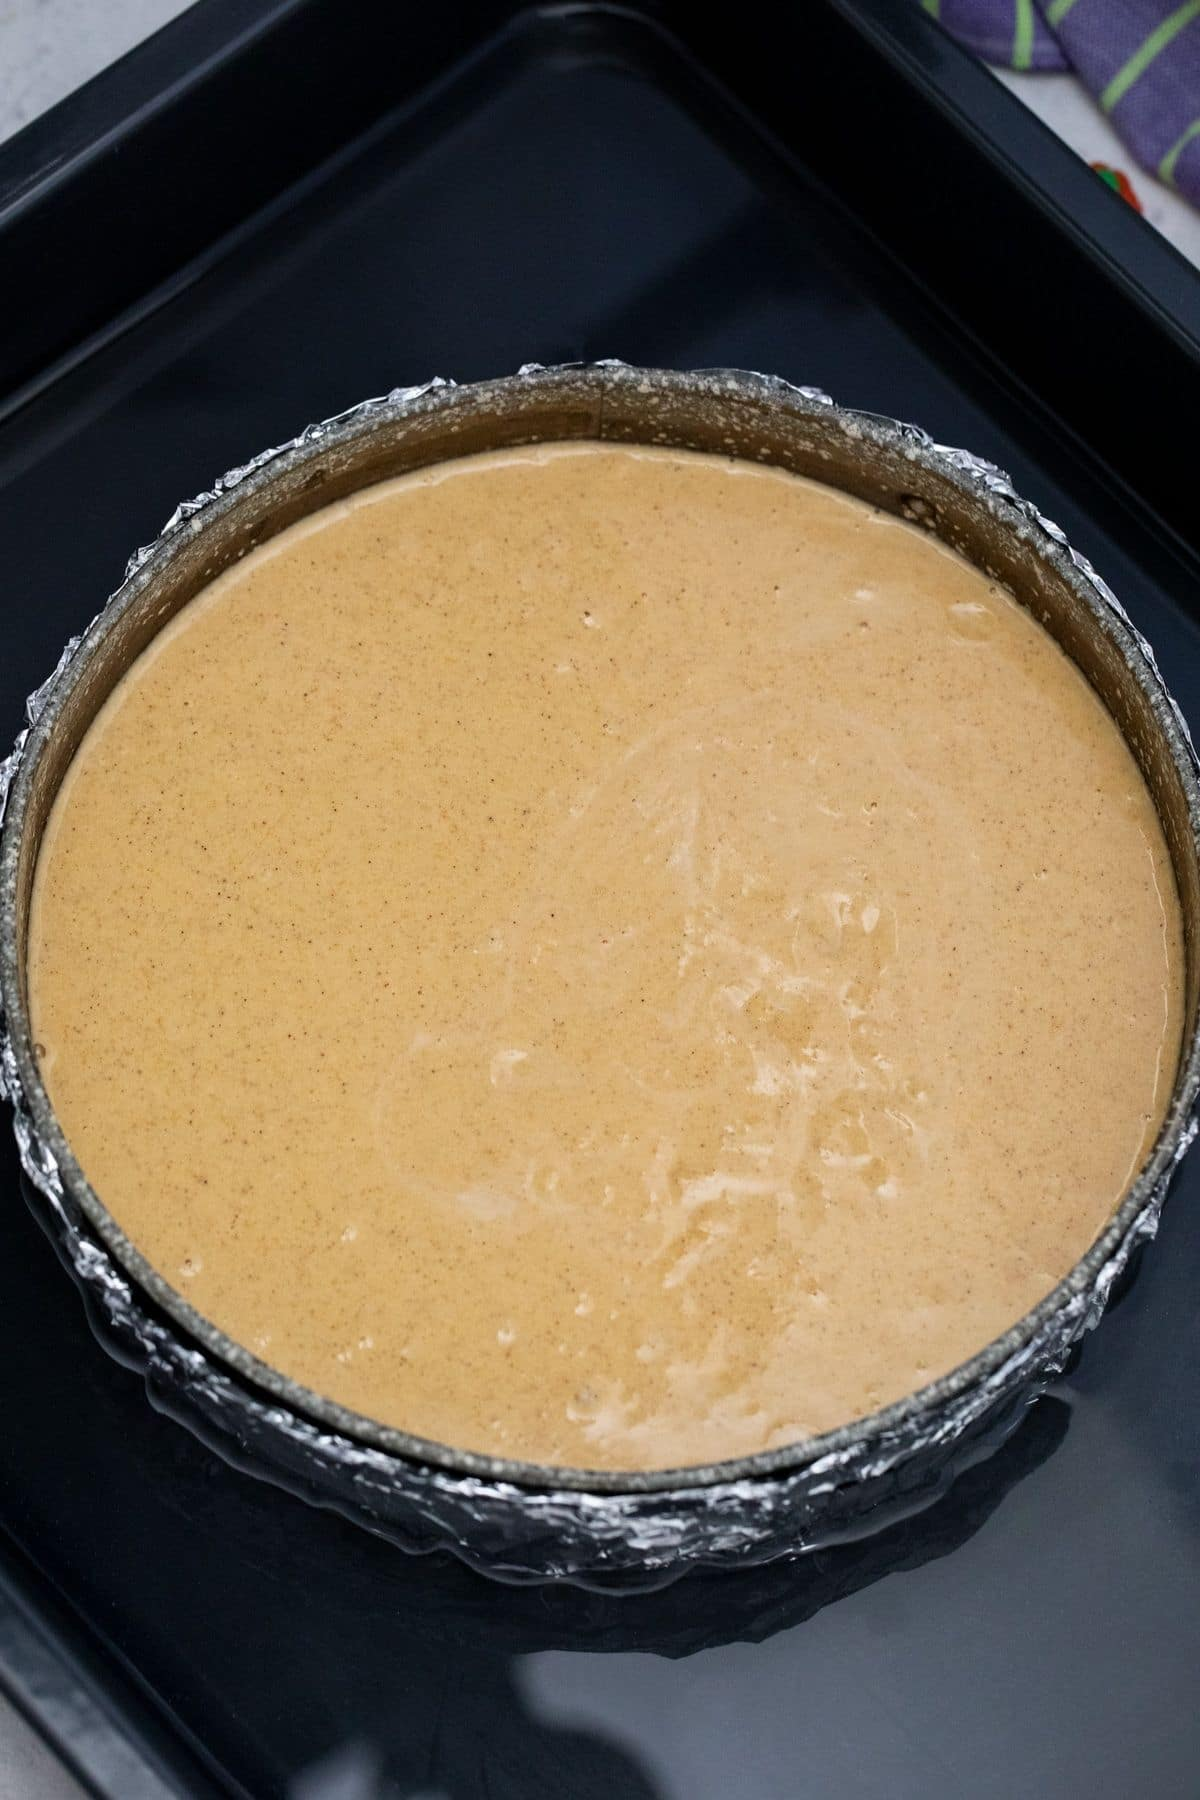 Large pan filled with water and springform pan of cheesecake in center